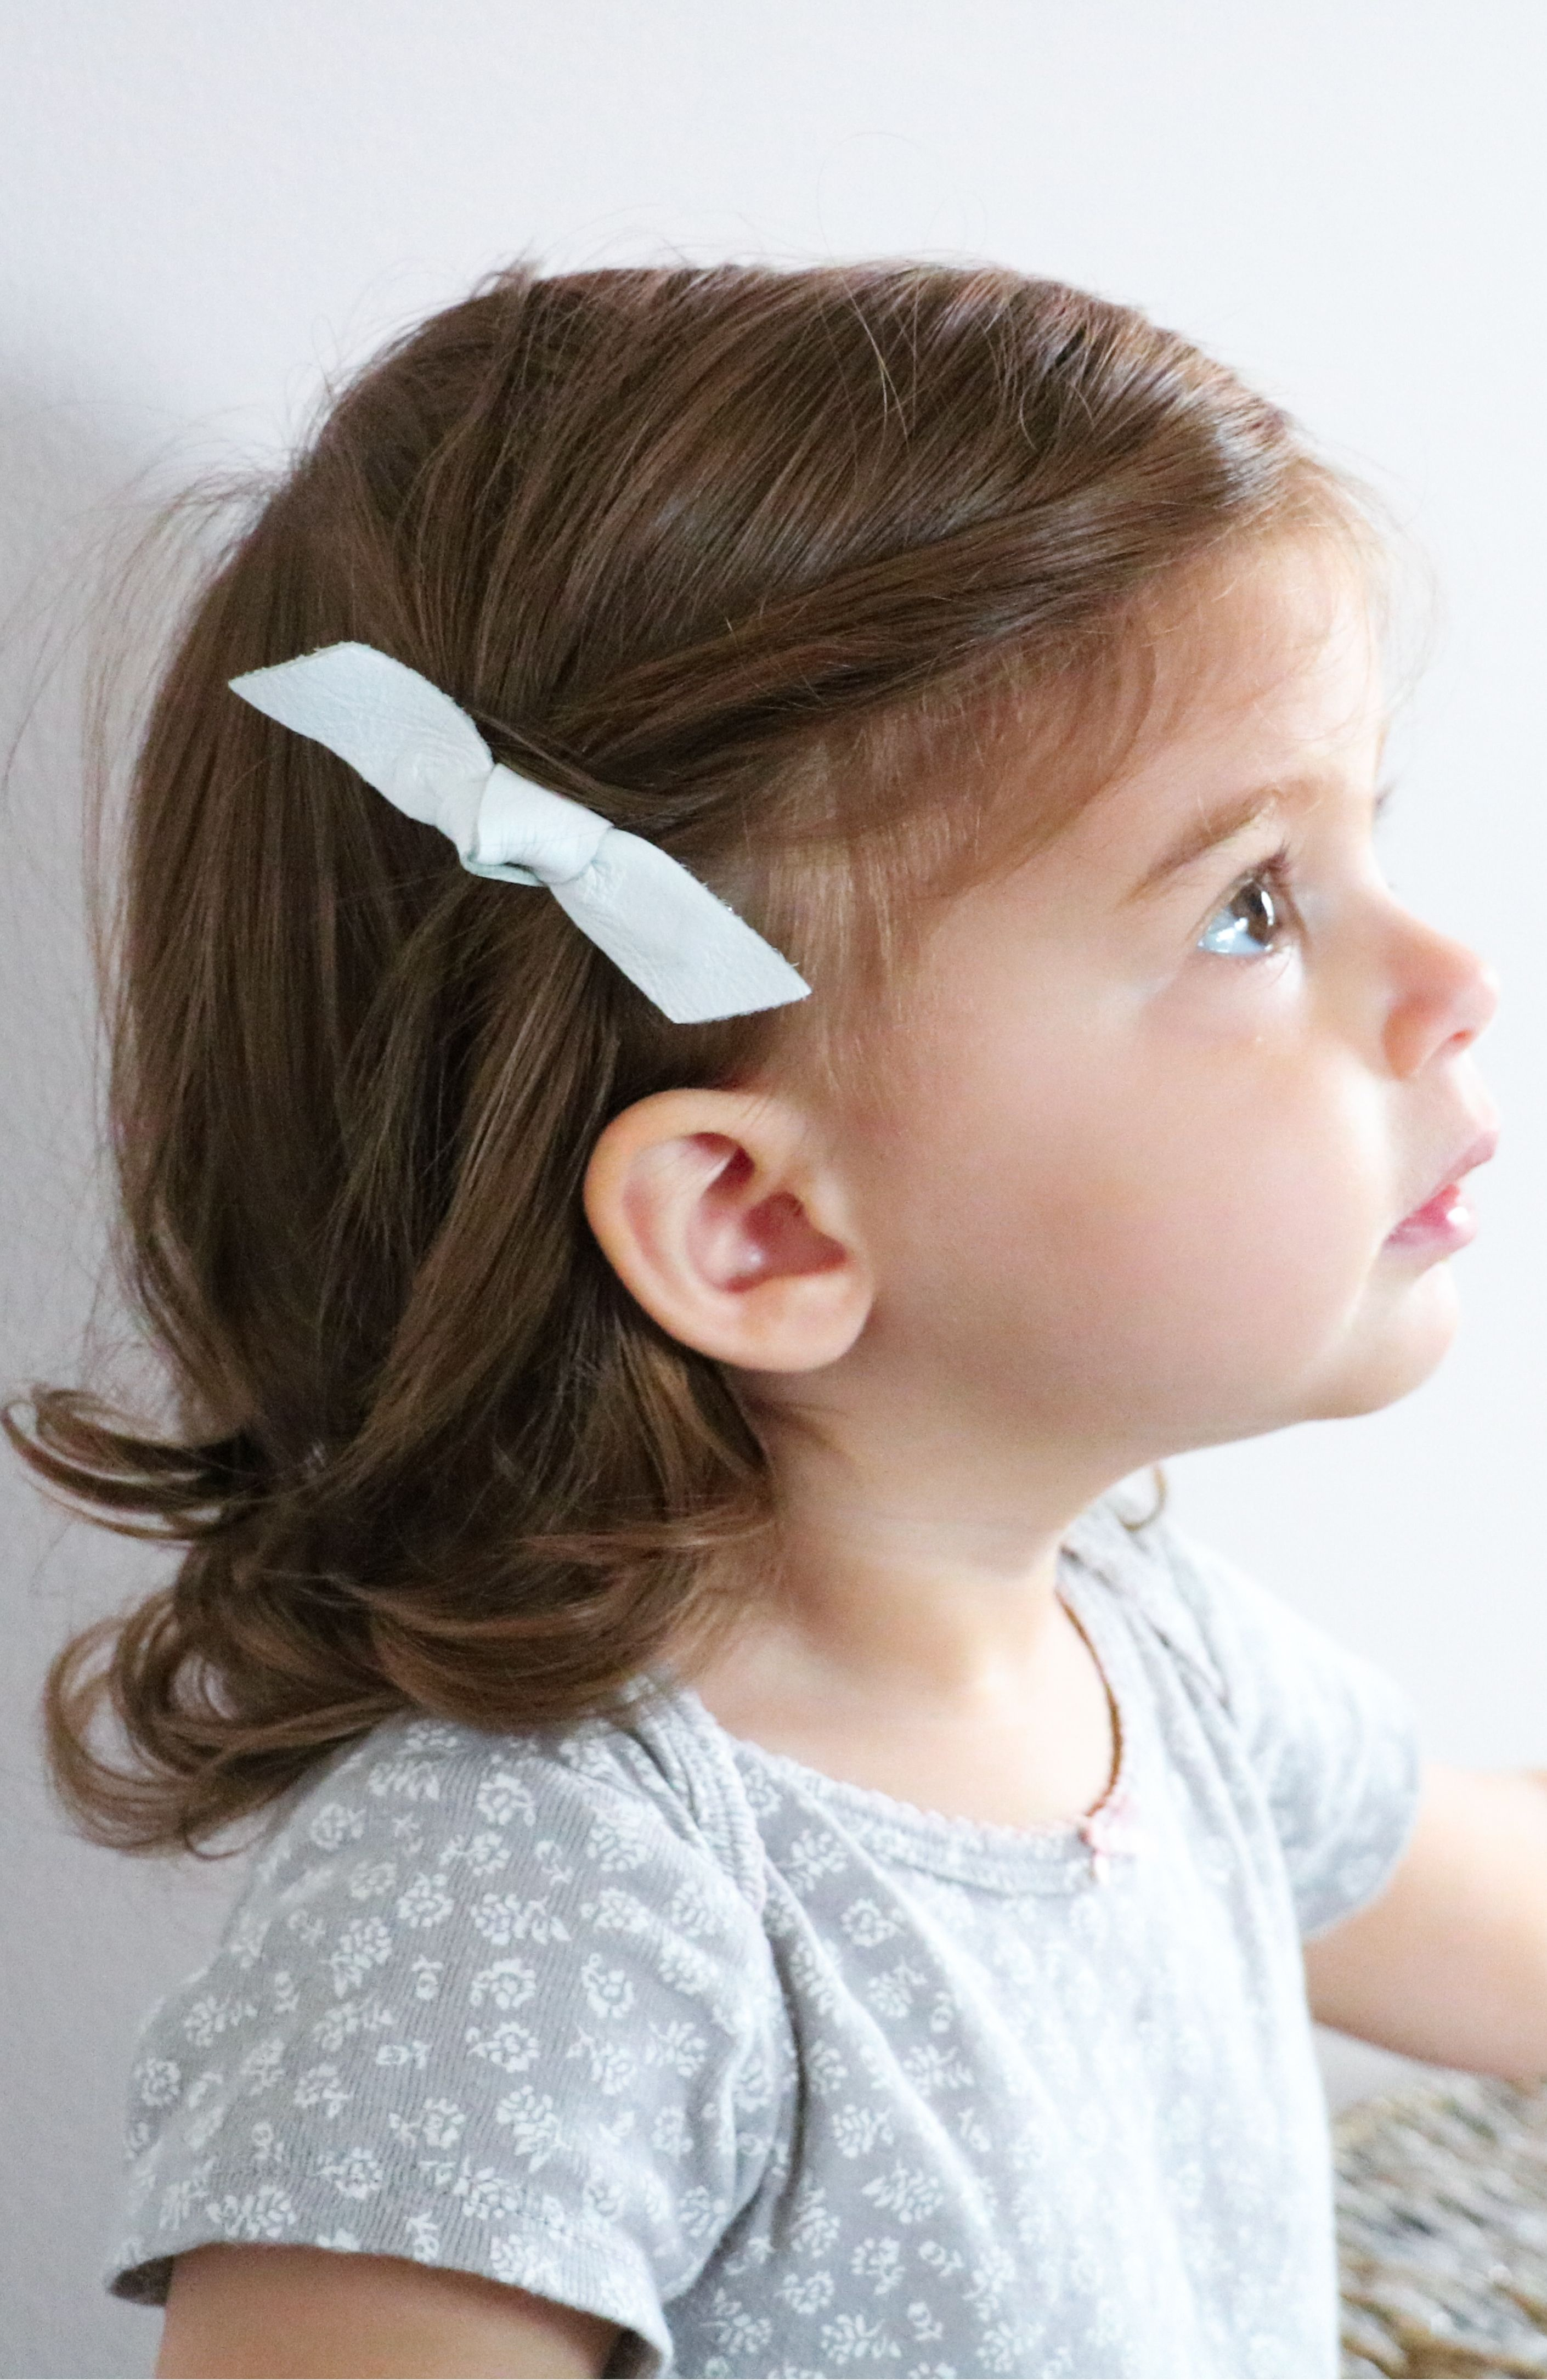 Clips Gift Set Headband Gift Set BUNDLE OF 3 Large Leather Bow Headbands or Clips *Natural Collection*- Infertility Baby Genuine Leather